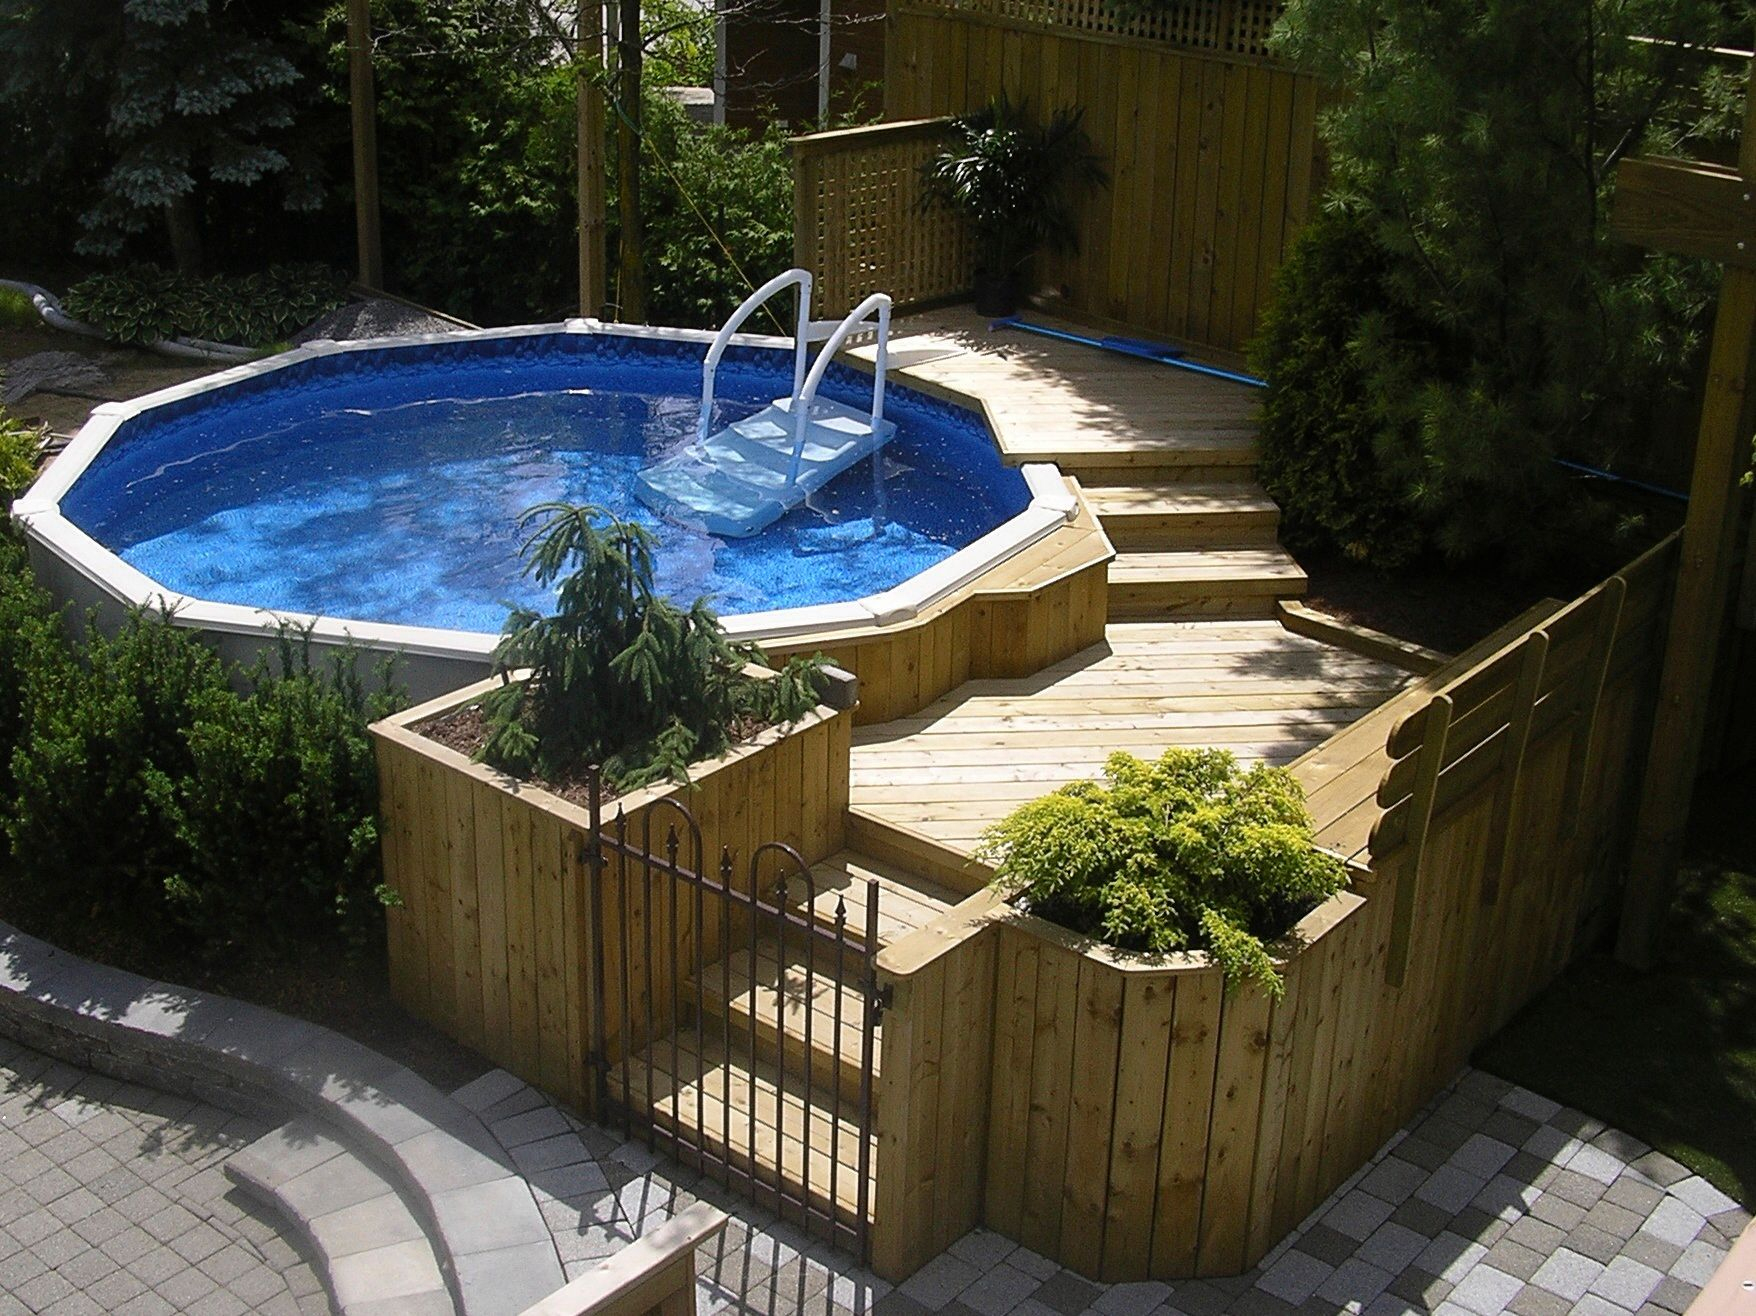 Above Ground Pool, In Harmony With The Backyard! By Les intérieur Roche Autour Piscine Hors-Terre